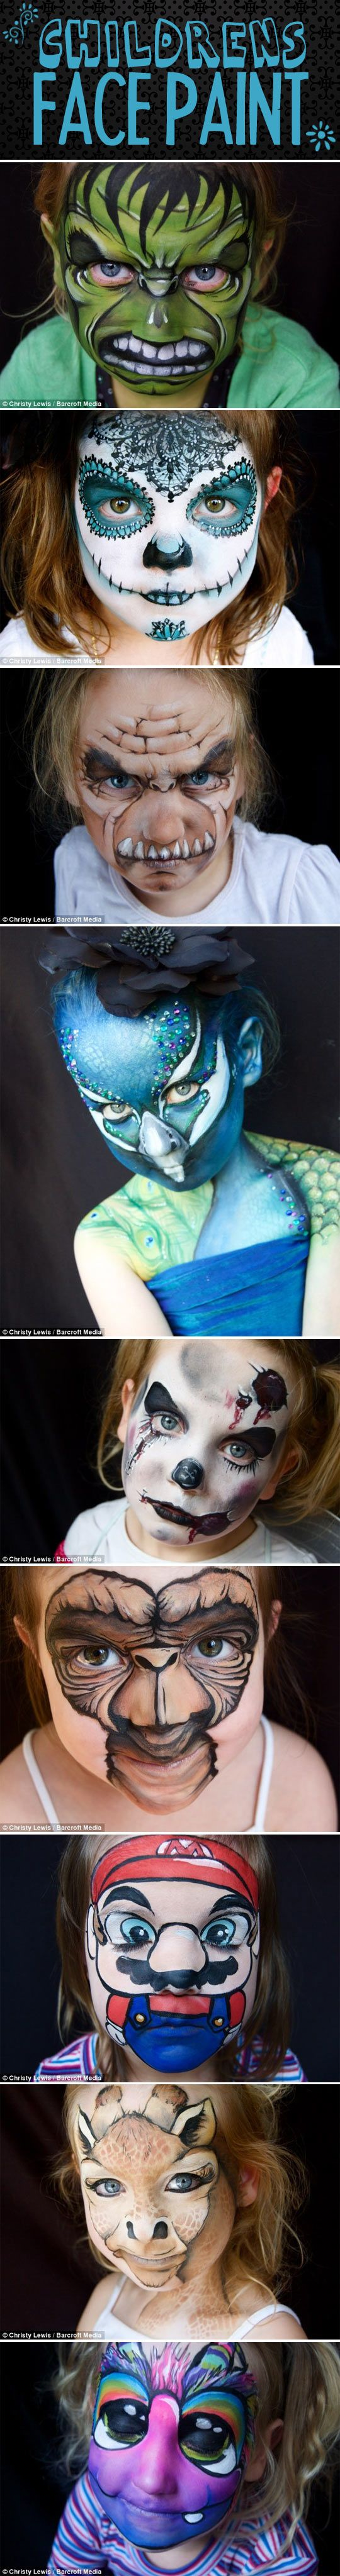 While I could never see my daughter sitting still long enough (or keeping her hands off her face) these are totally rockin face painting ideas for kids or even us big kids.